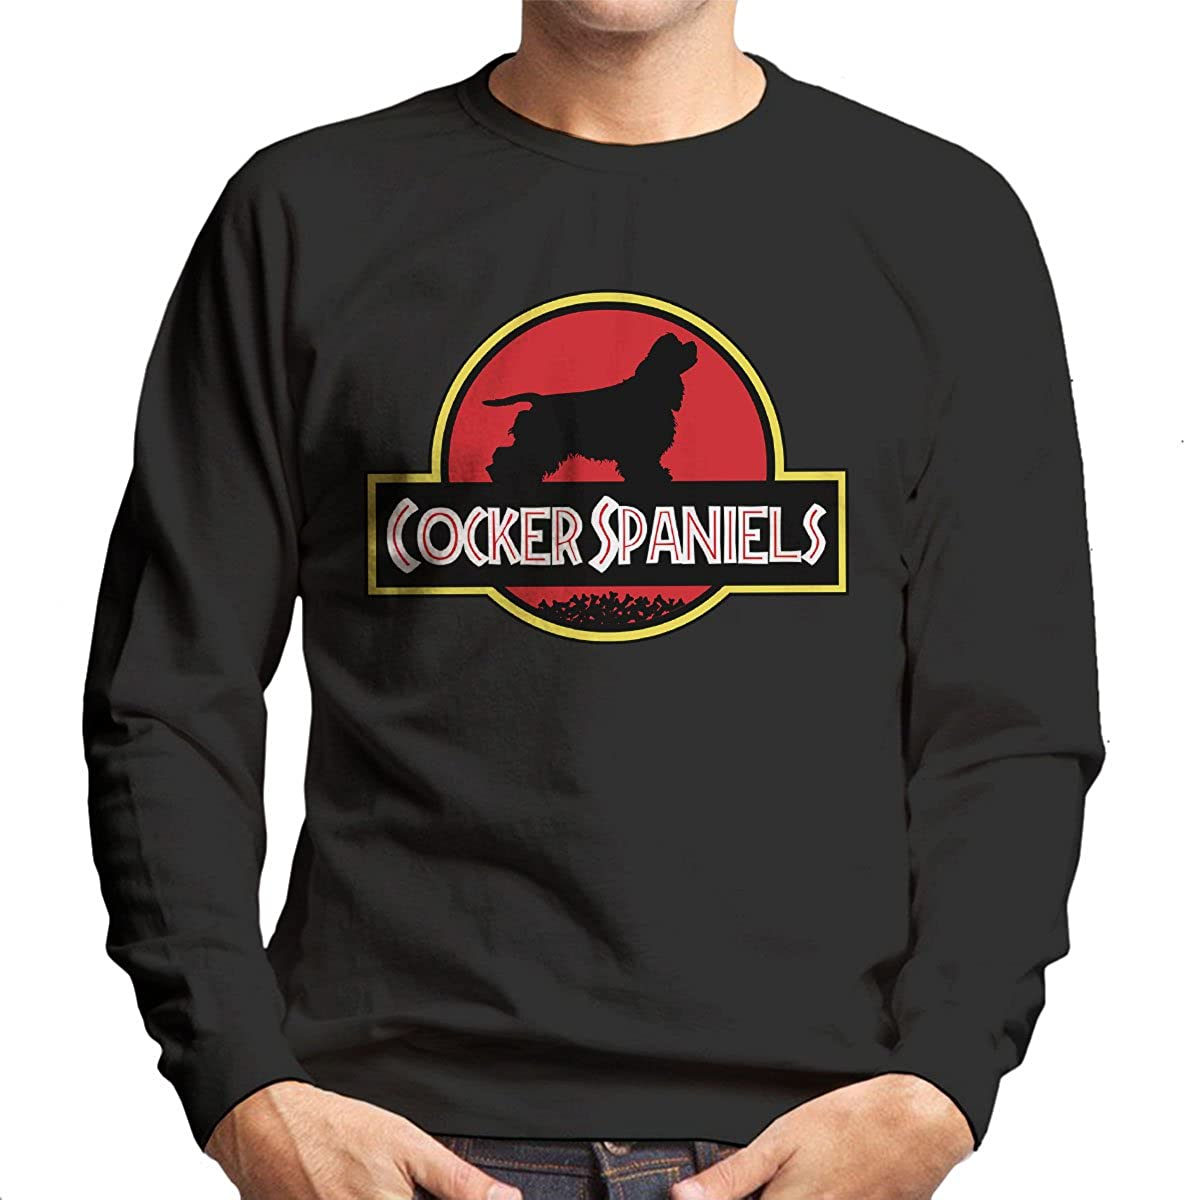 Jurassic Cocker Spaniels Kids Sweatshirt